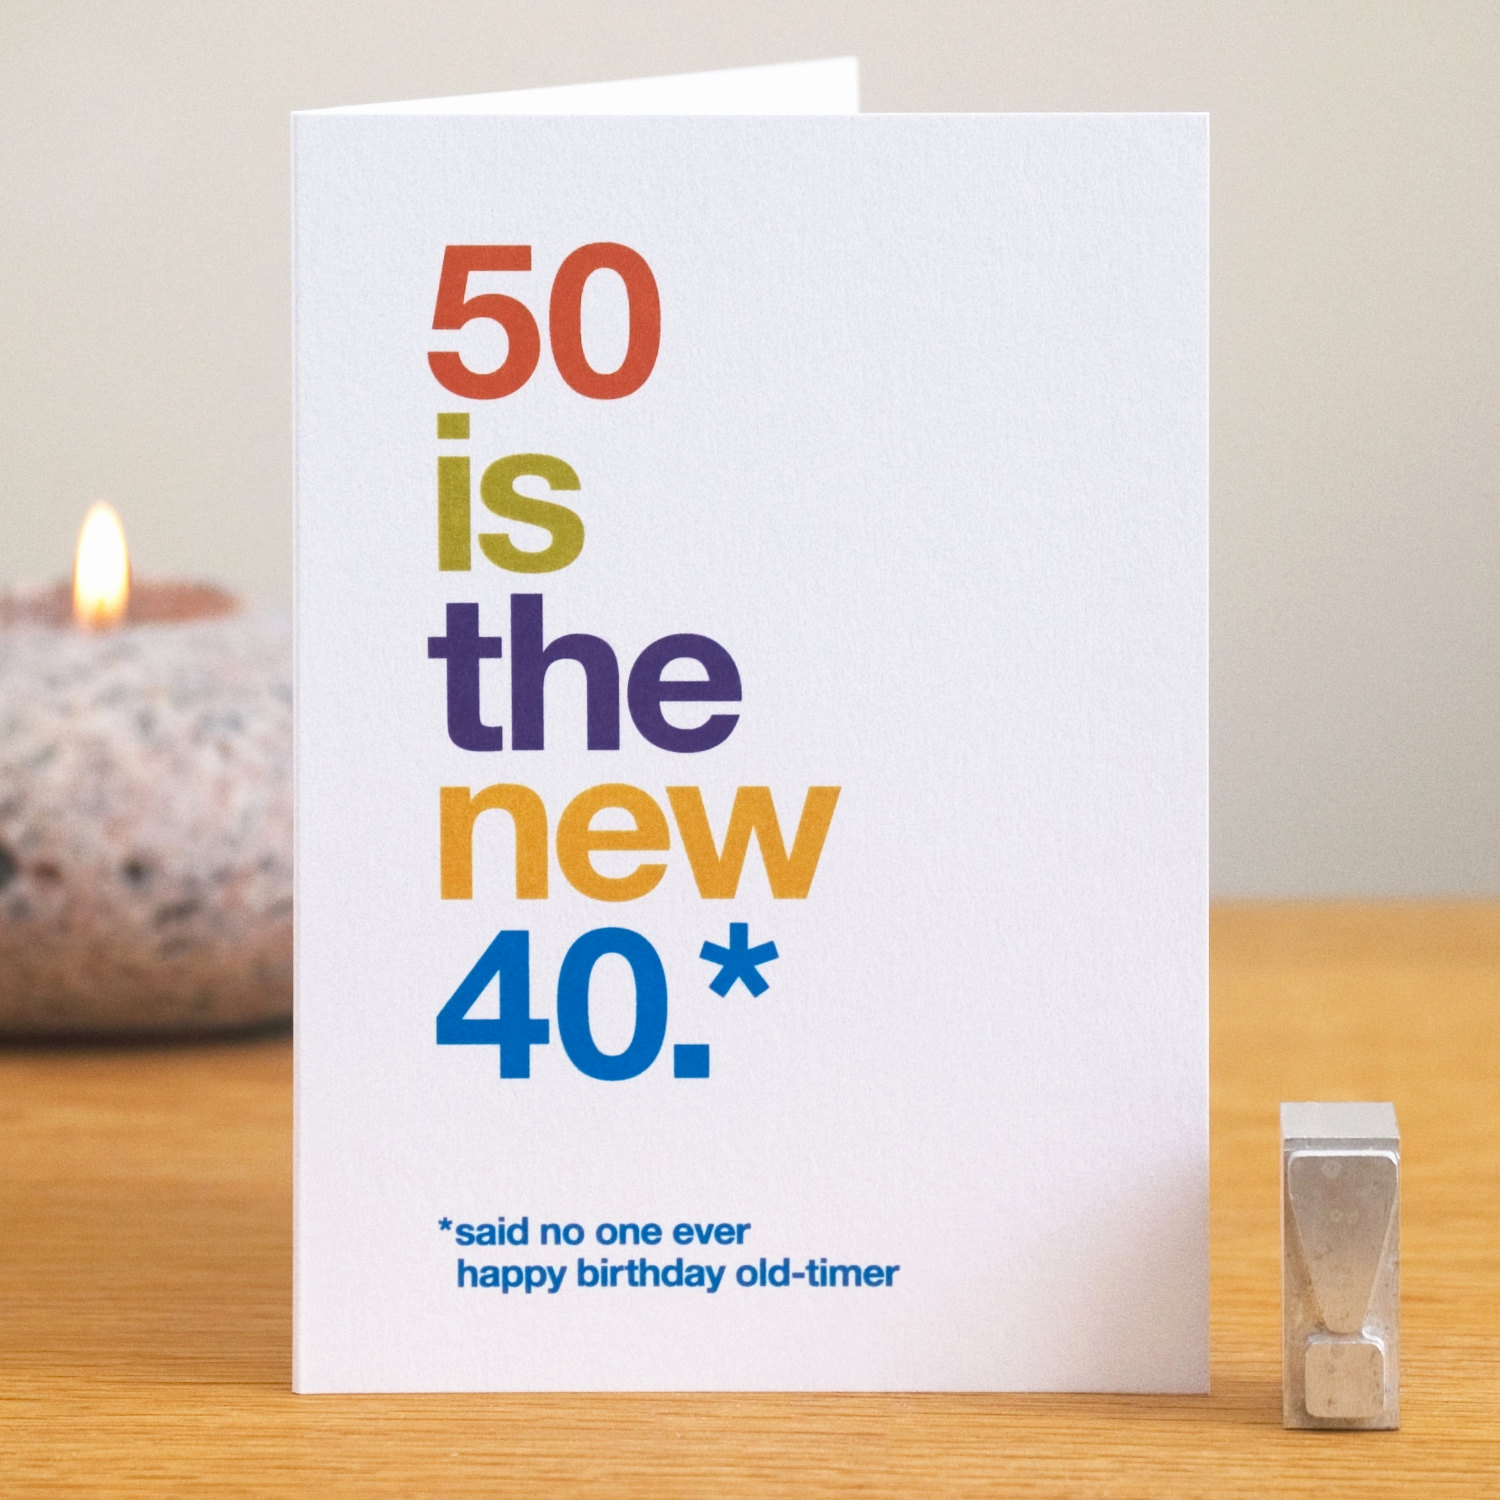 things to write in a 50th birthday card ; what-to-write-in-a-50th-birthday-card-unique-funny-50th-birthday-card-50-birthday-card-50-card-card-of-what-to-write-in-a-50th-birthday-card